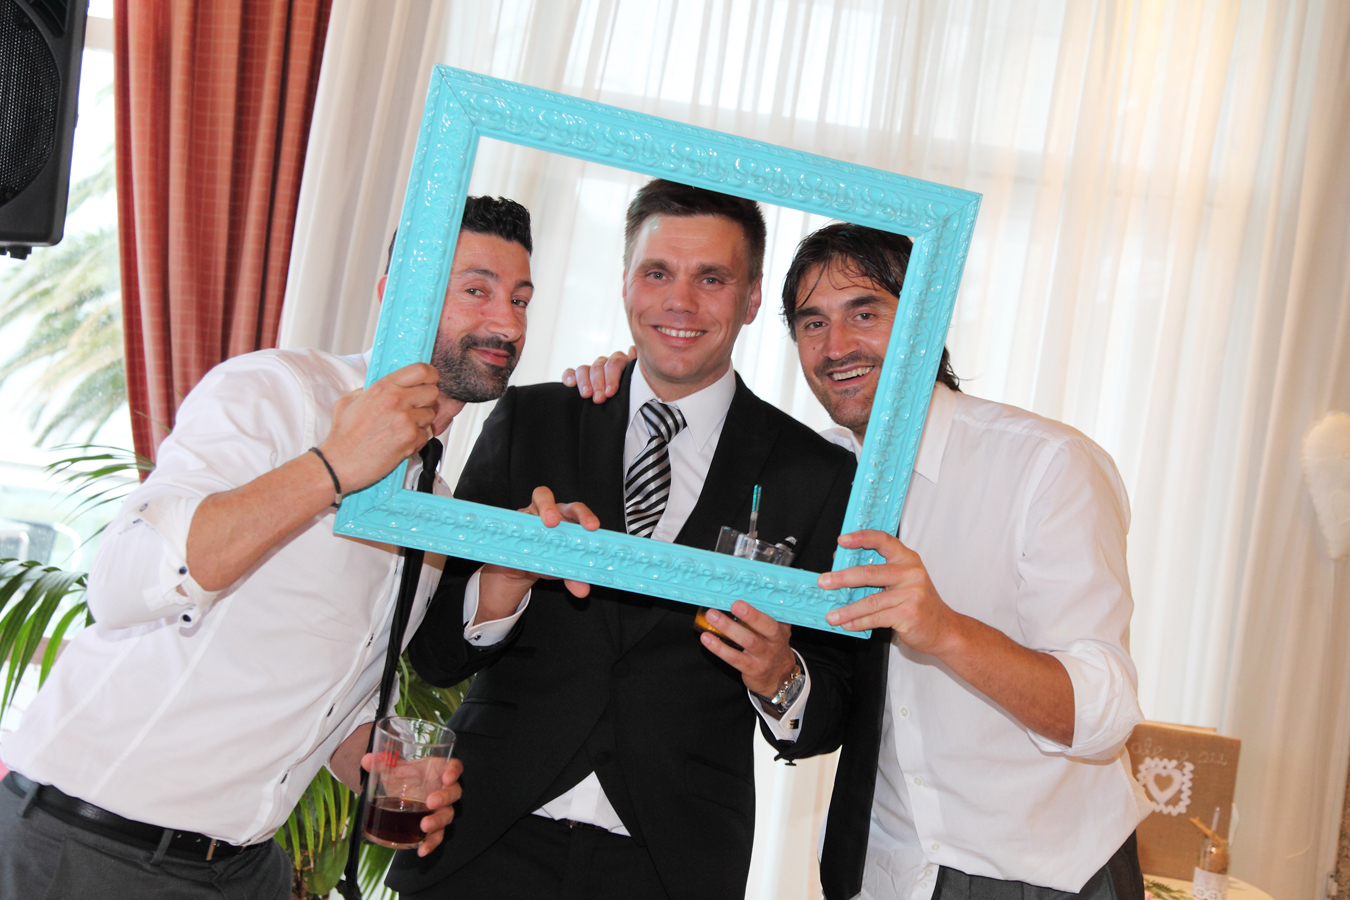 boda-hotel-louxo-ceremonia-civil-026